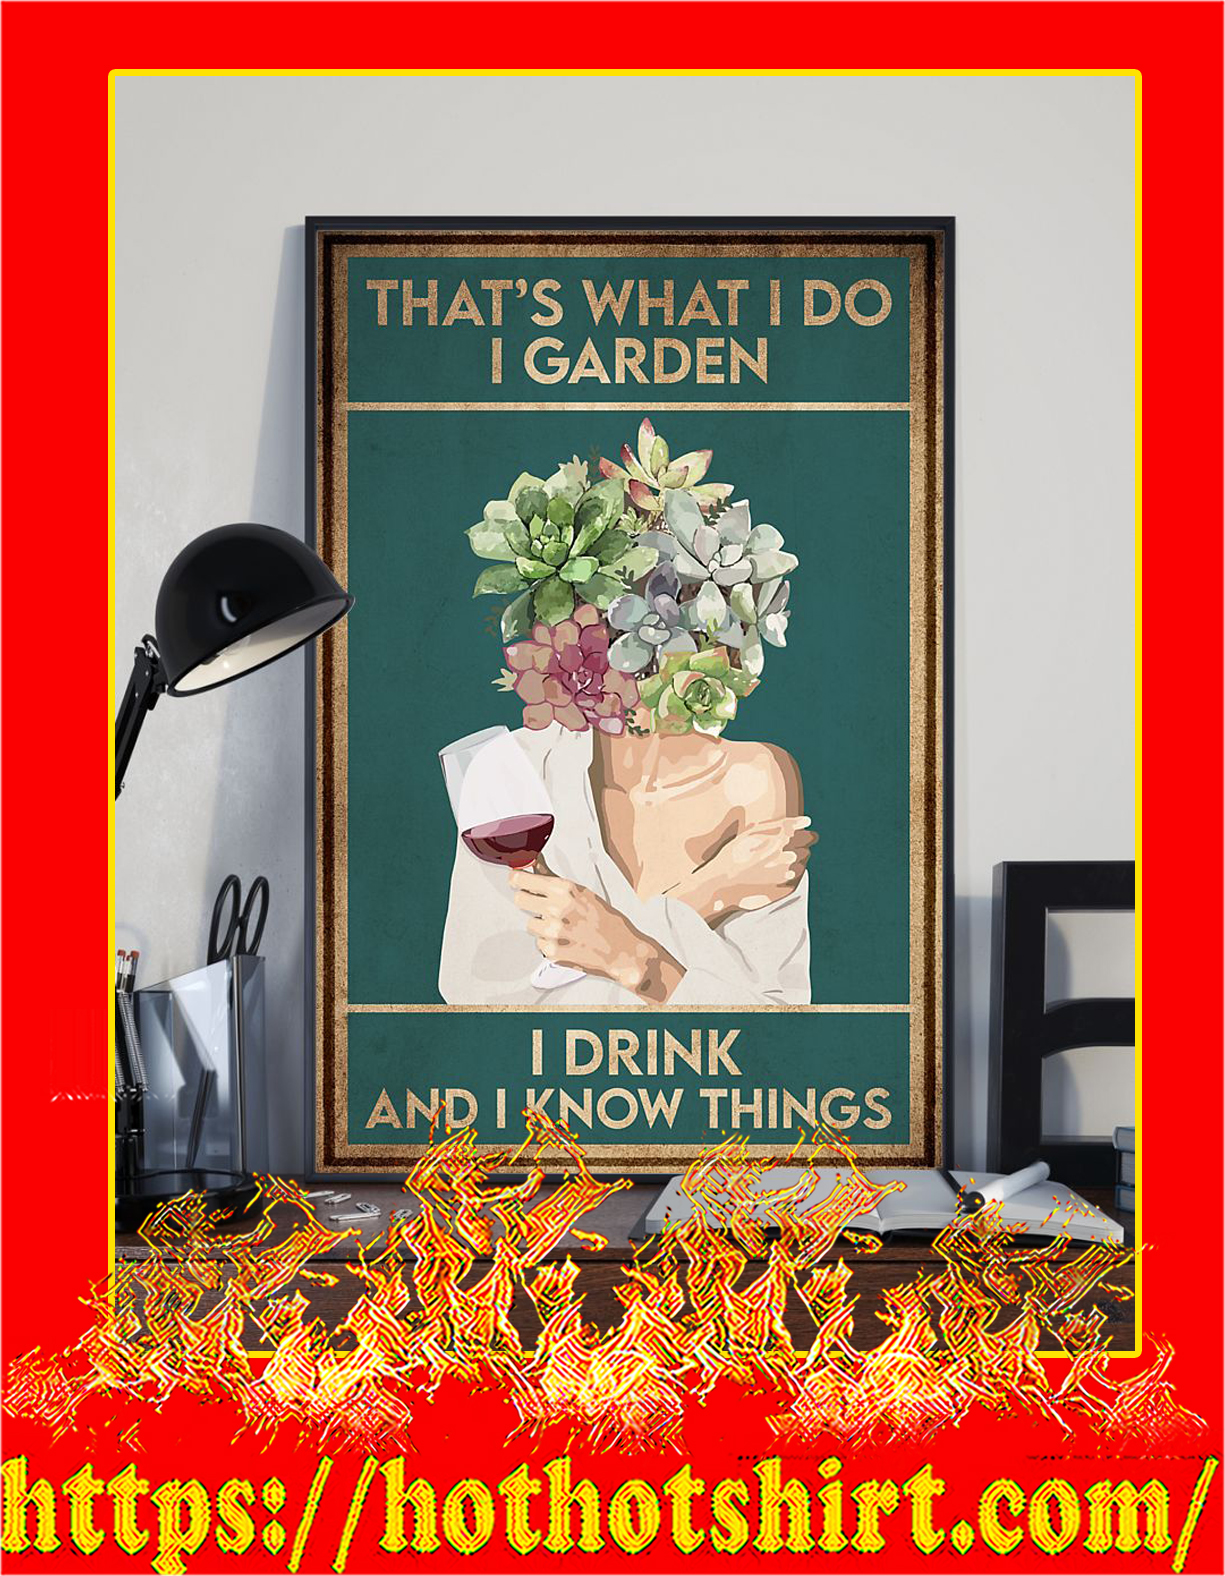 Wine that's what i do i garden i drink and i know things poster - Pic 3